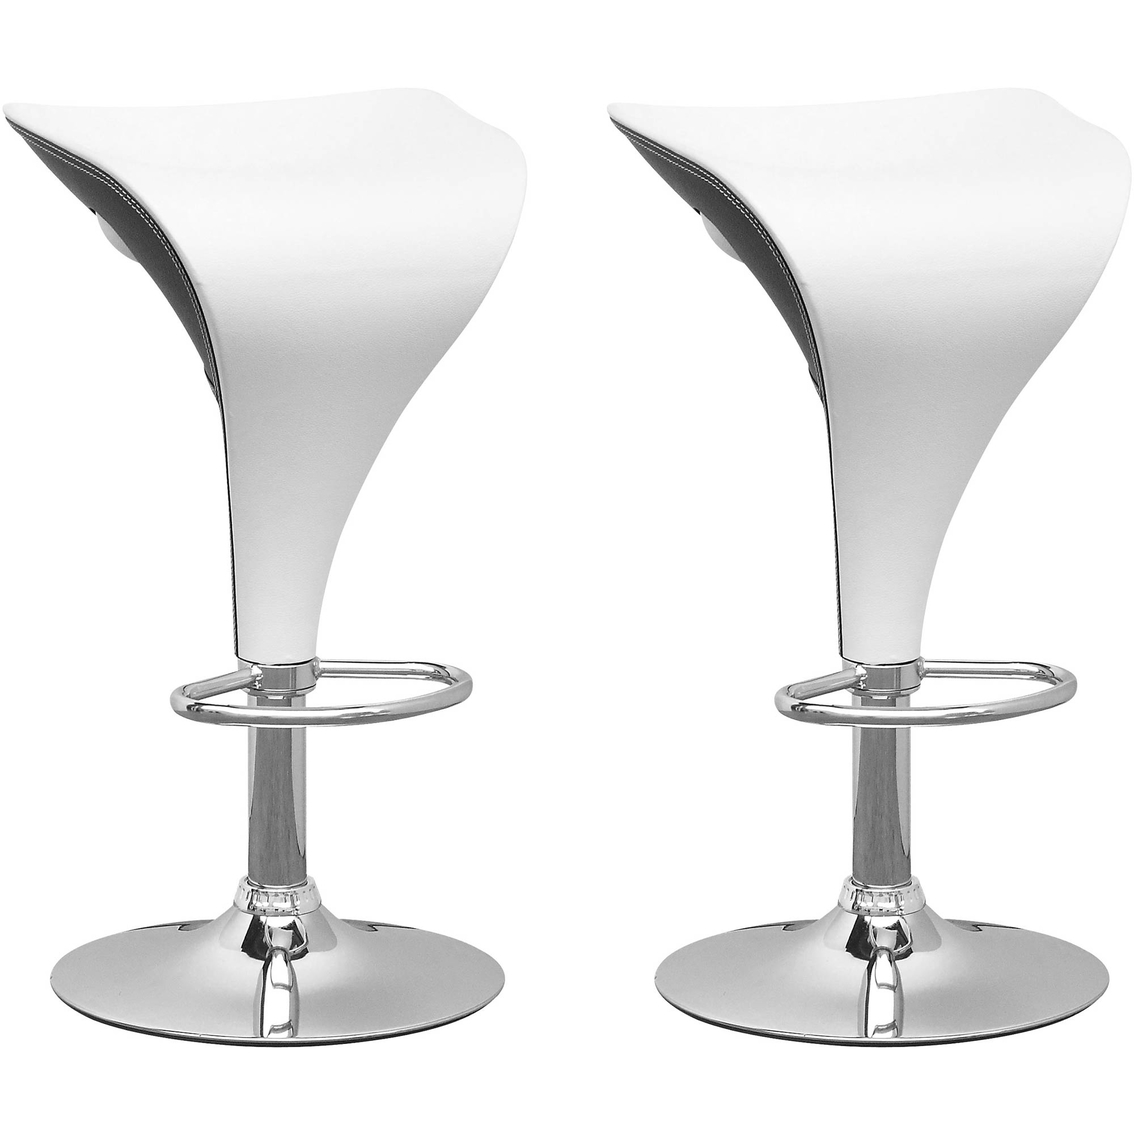 Super Corliving Adjustable Two Toned Bar Stool In Black And White Dailytribune Chair Design For Home Dailytribuneorg